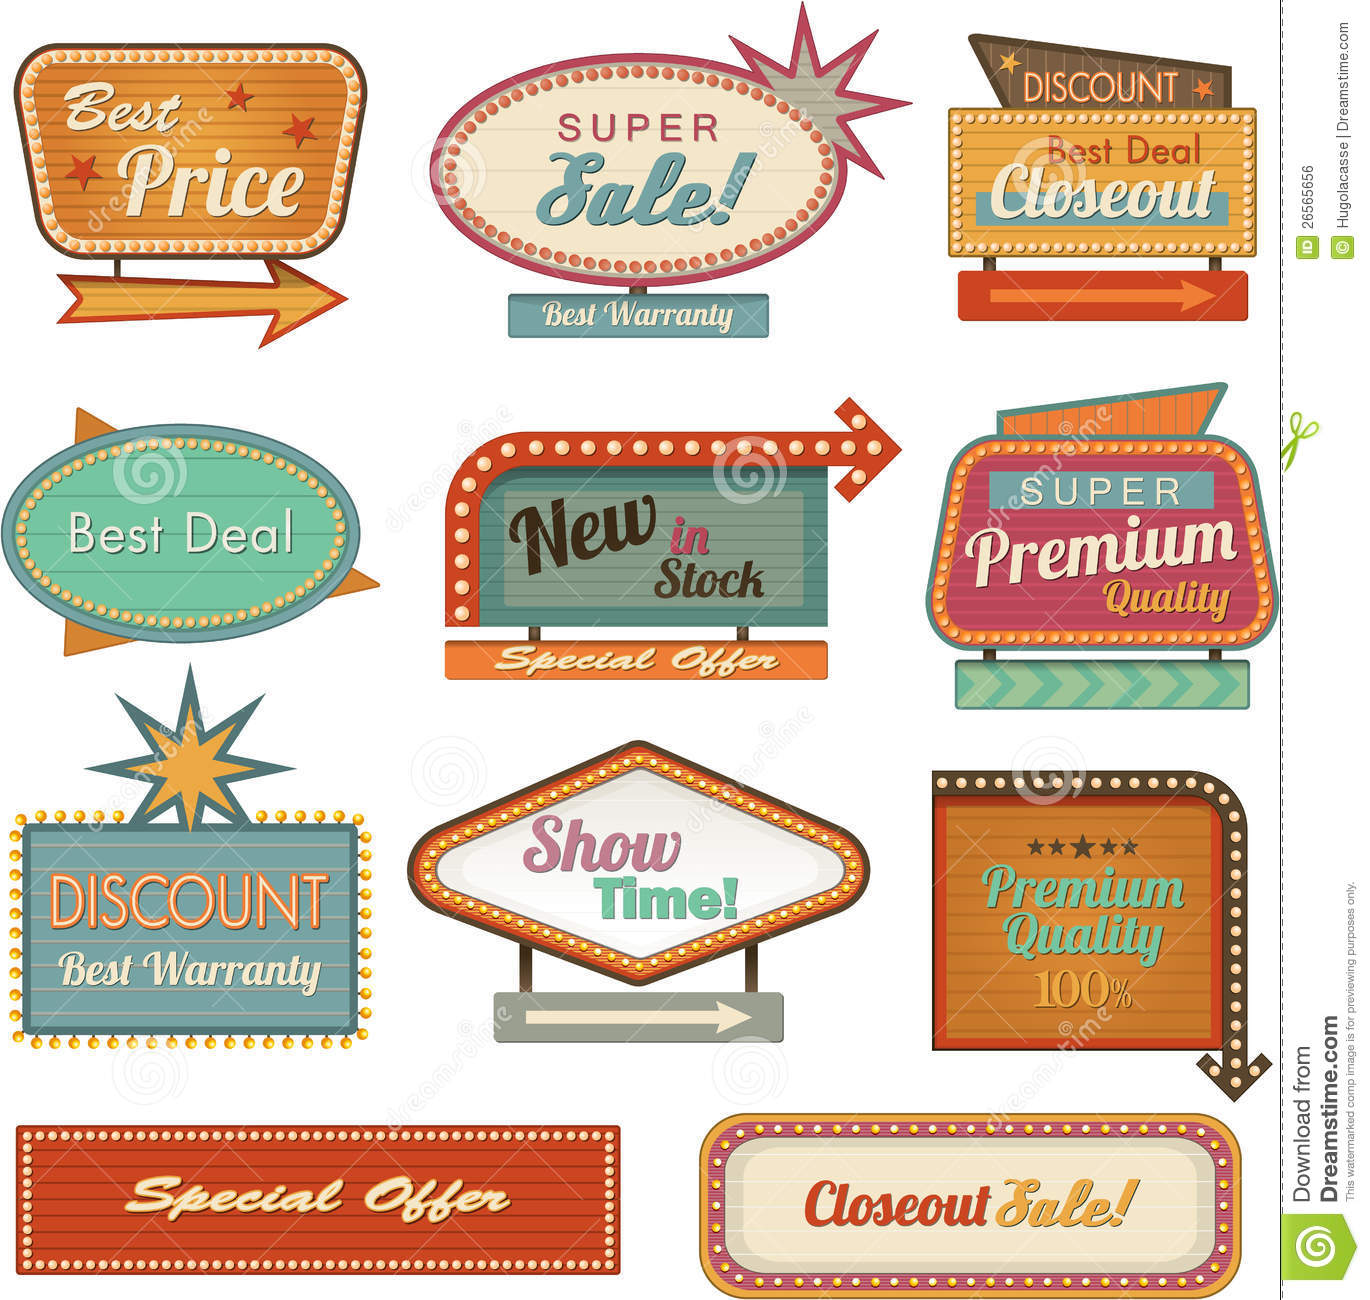 Retro Banner Sign Ad Collection Royalty Free Stock Image